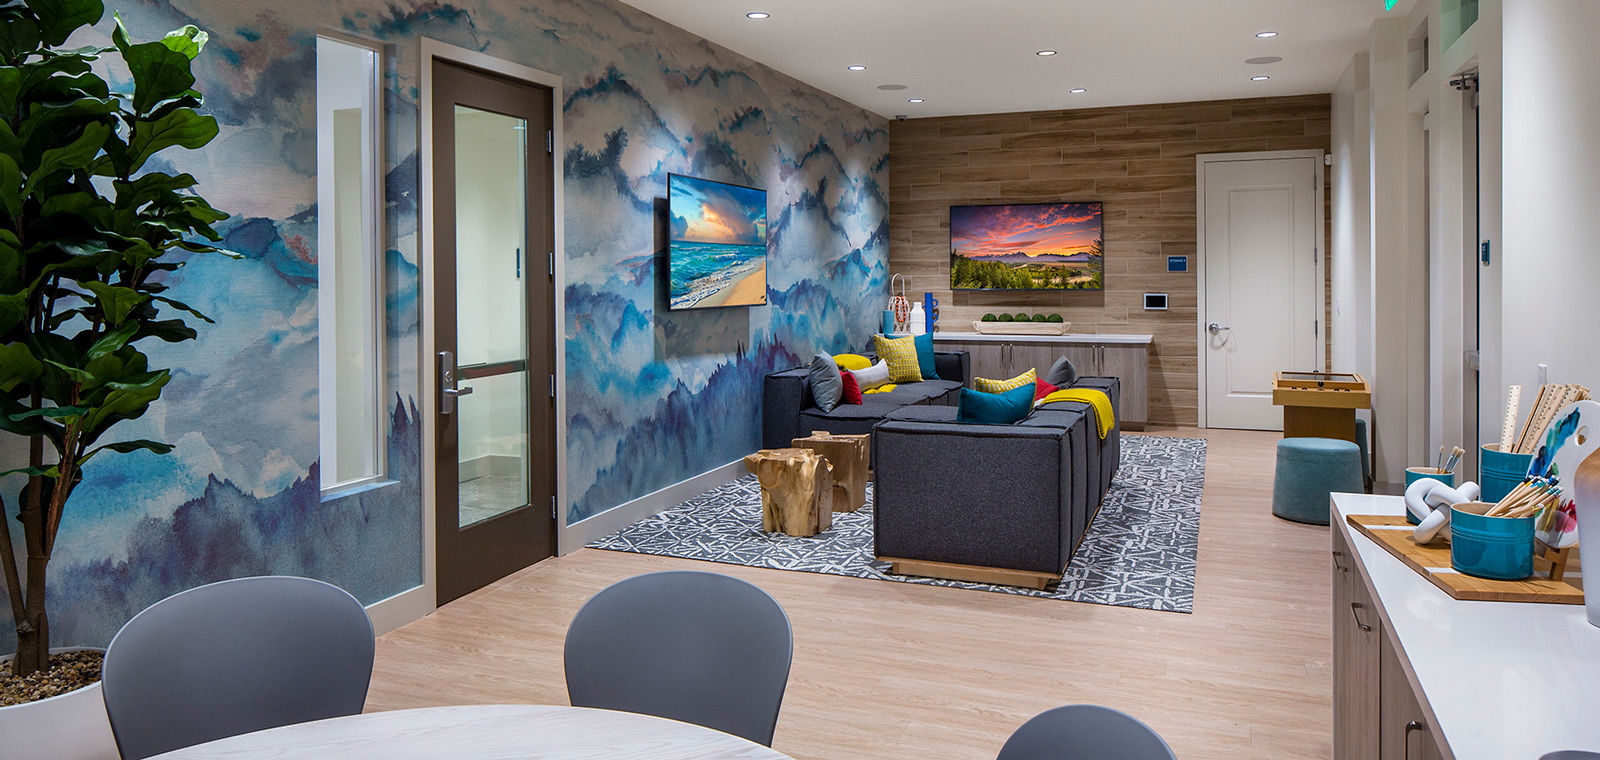 Activity Room | The Resort | New Homes in Rancho Cucamonga, CA